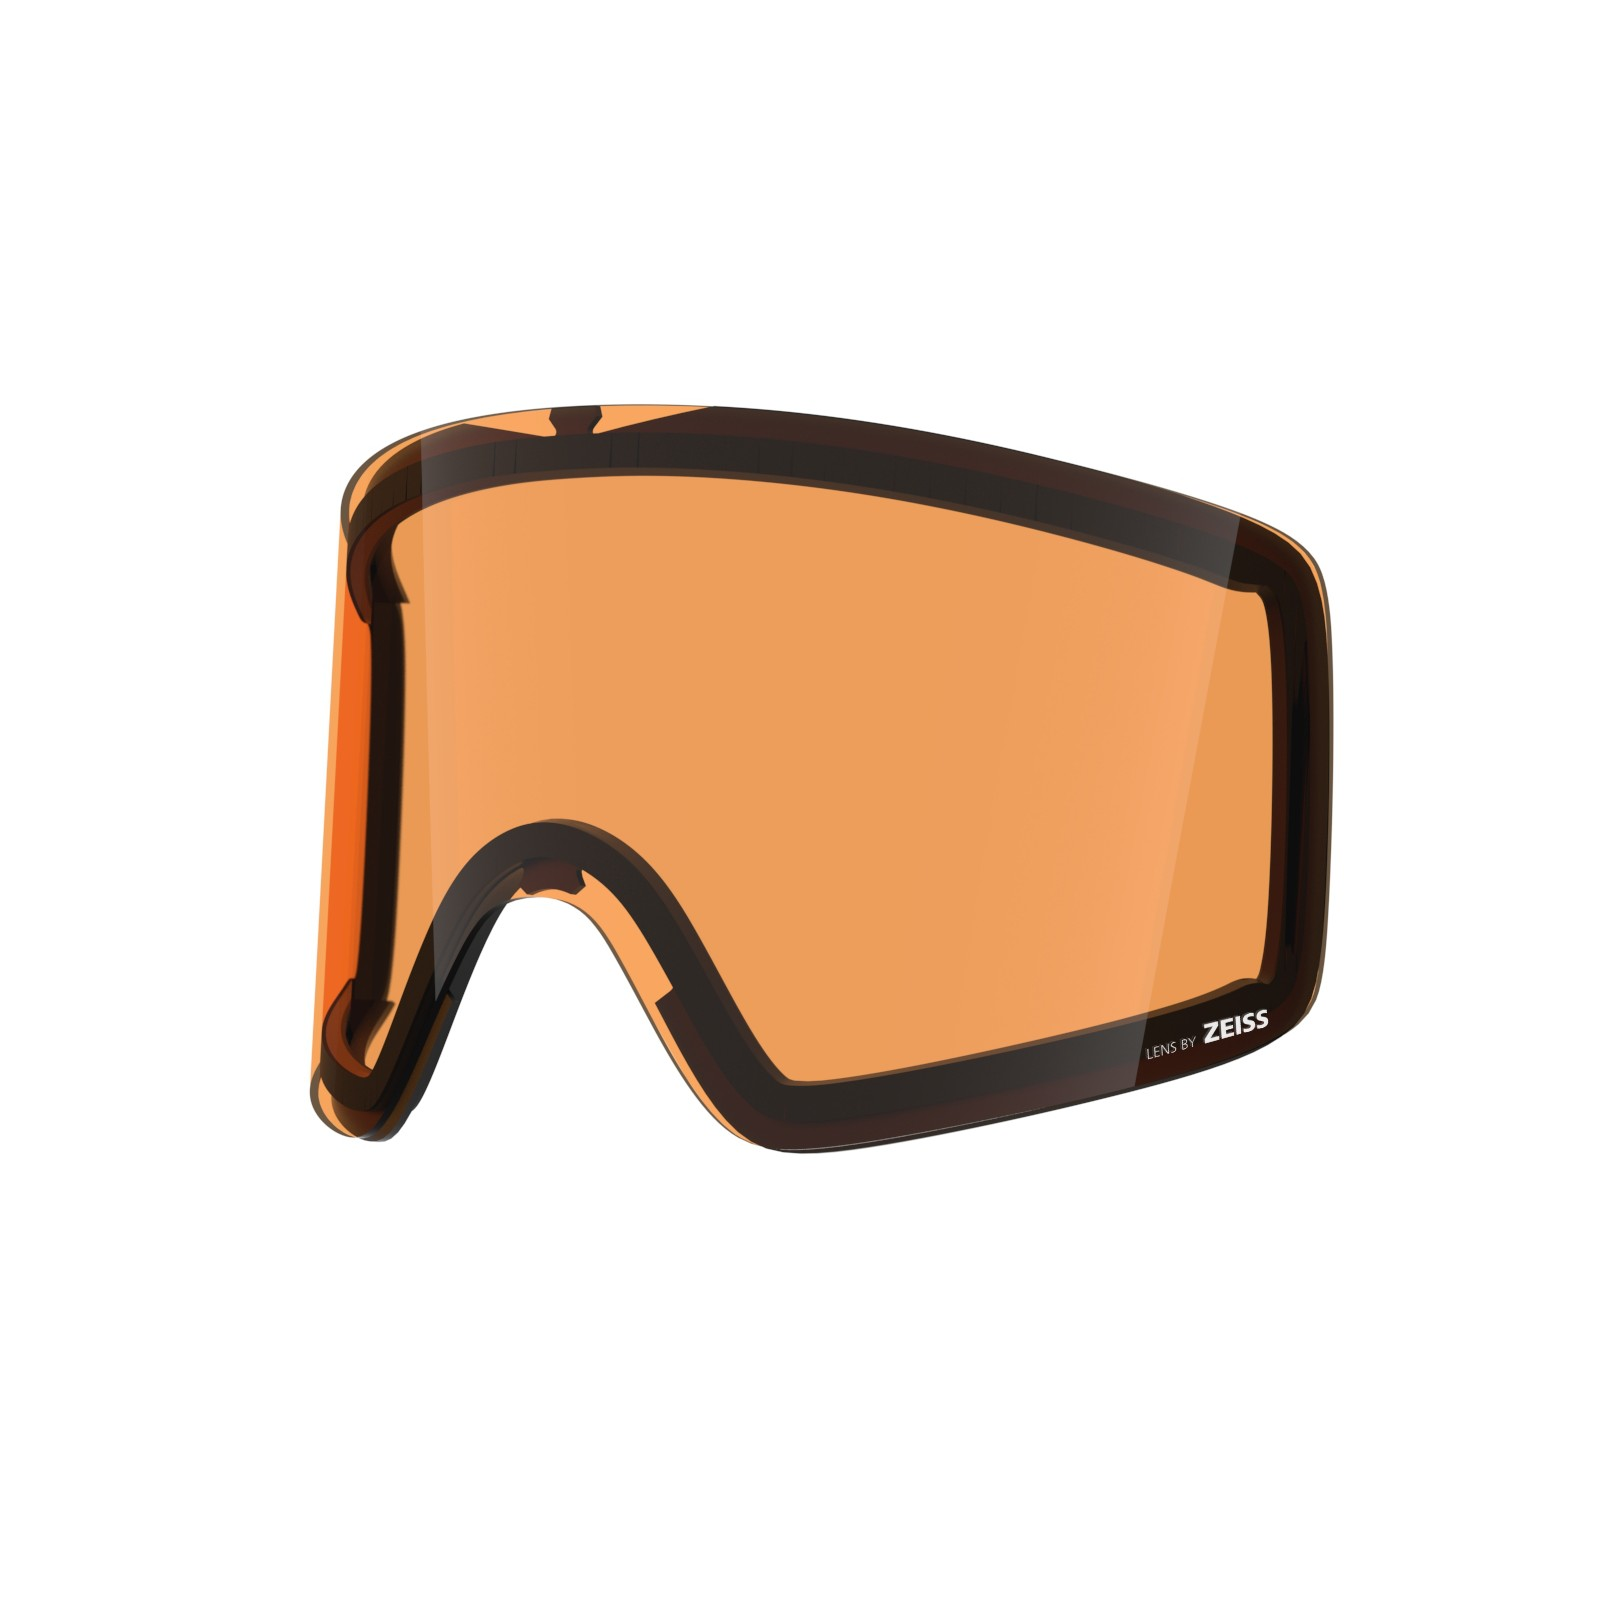 Persimmon lens for  Void goggle